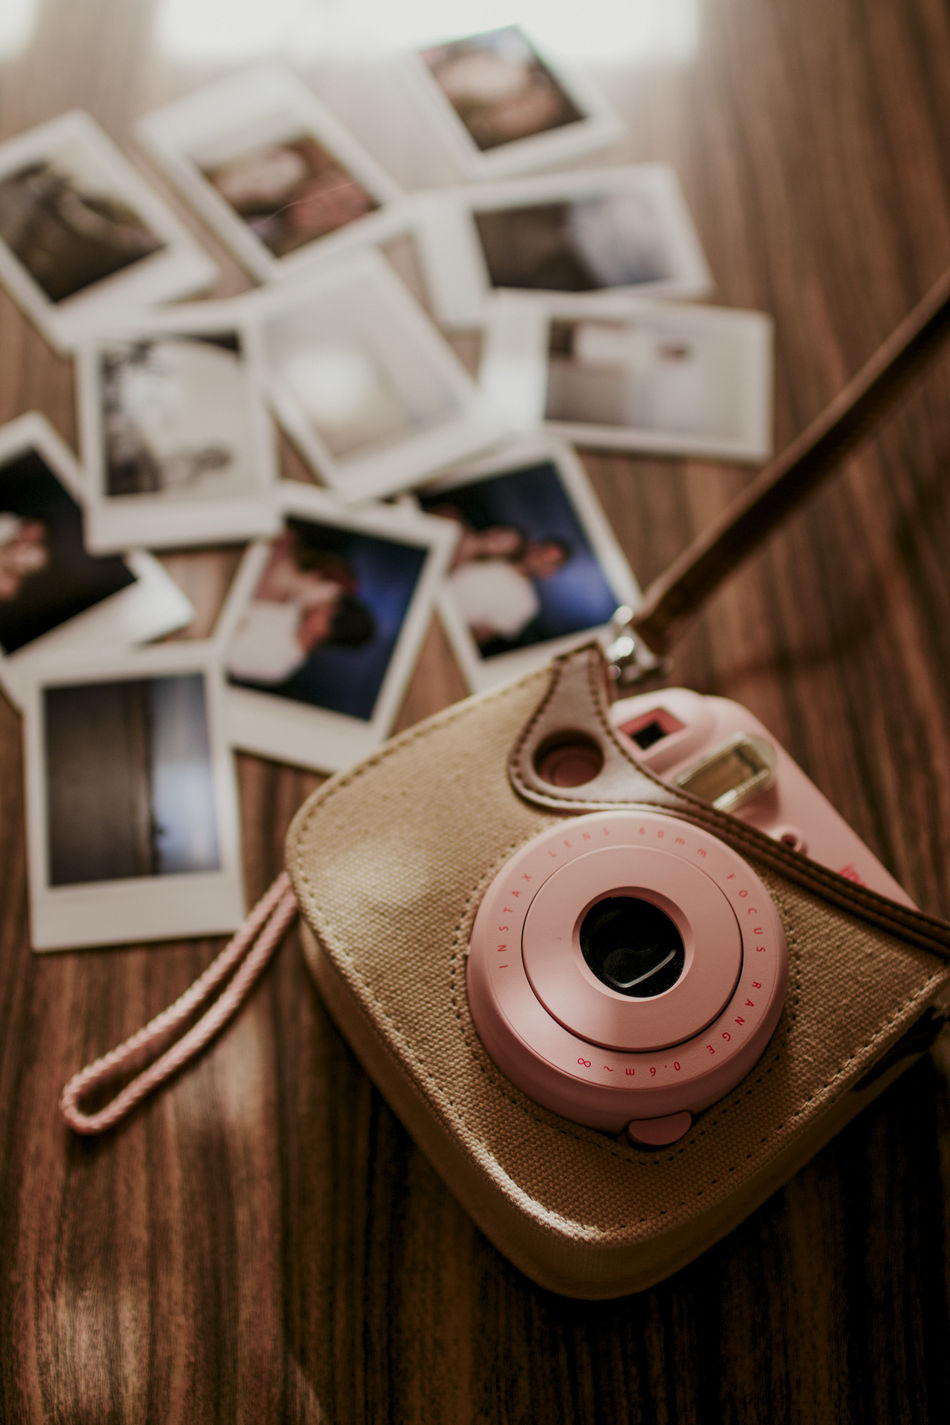 Camera Camera - Photographic Equipment Camera Insta Close-up Day Indoors  Instax Photo Instaxmini Instaxmini8 No People Pink Color Polaroid Vintage Vintage Camera Vintage Cameras Vintage Photo Wood Wood - Material